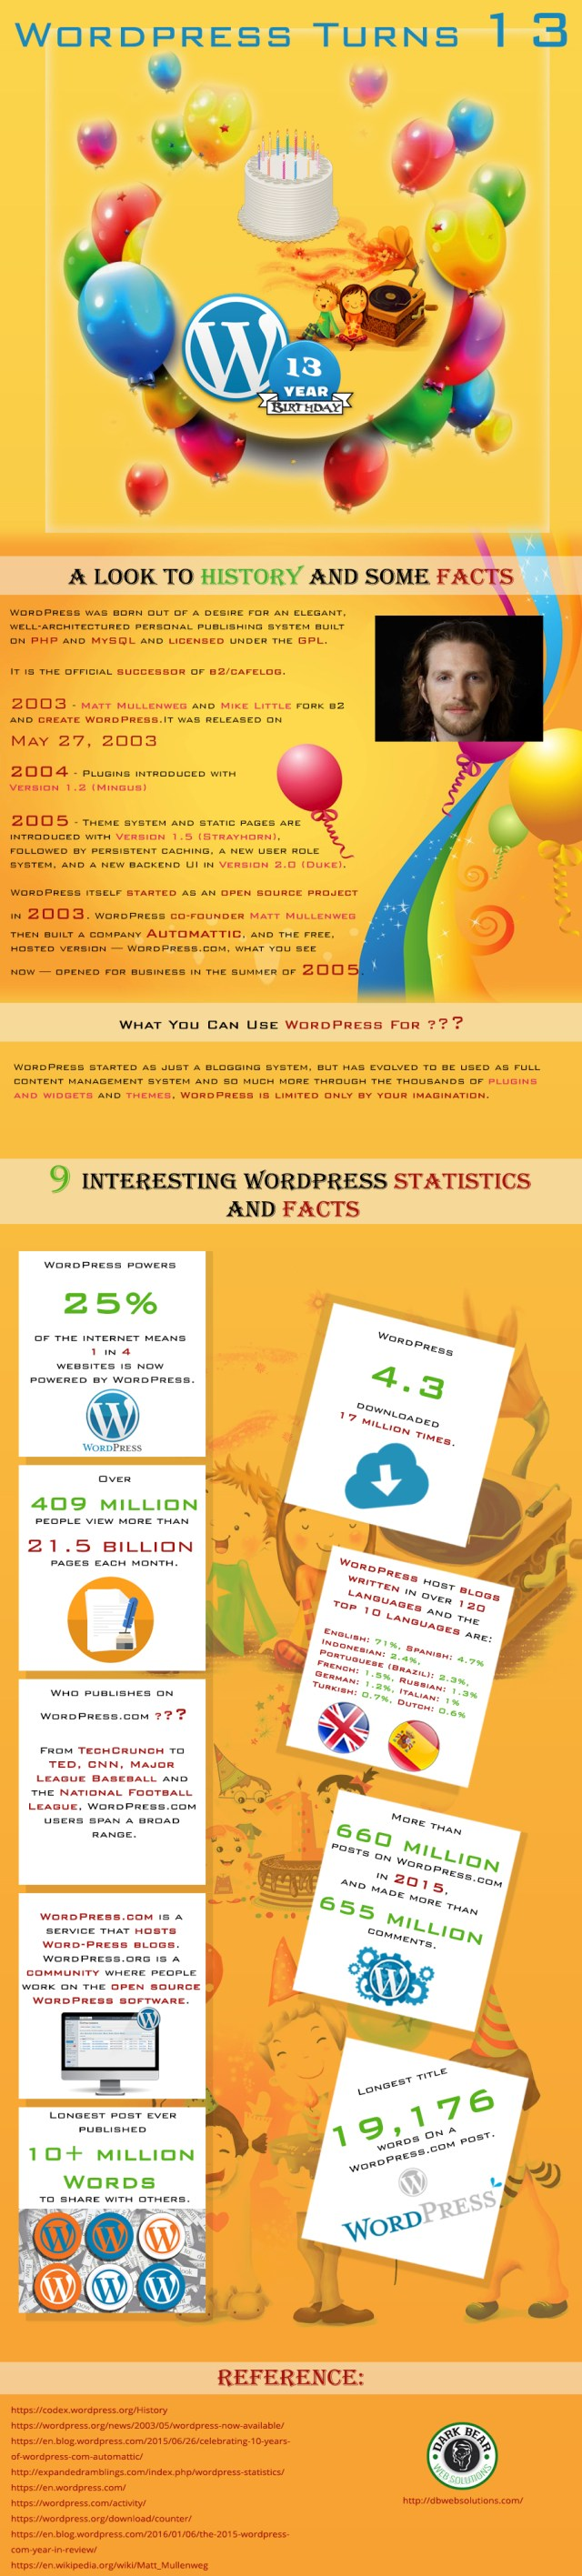 Wordpress 13th Birthday - A look to History, Stats & Facts (Infographic)